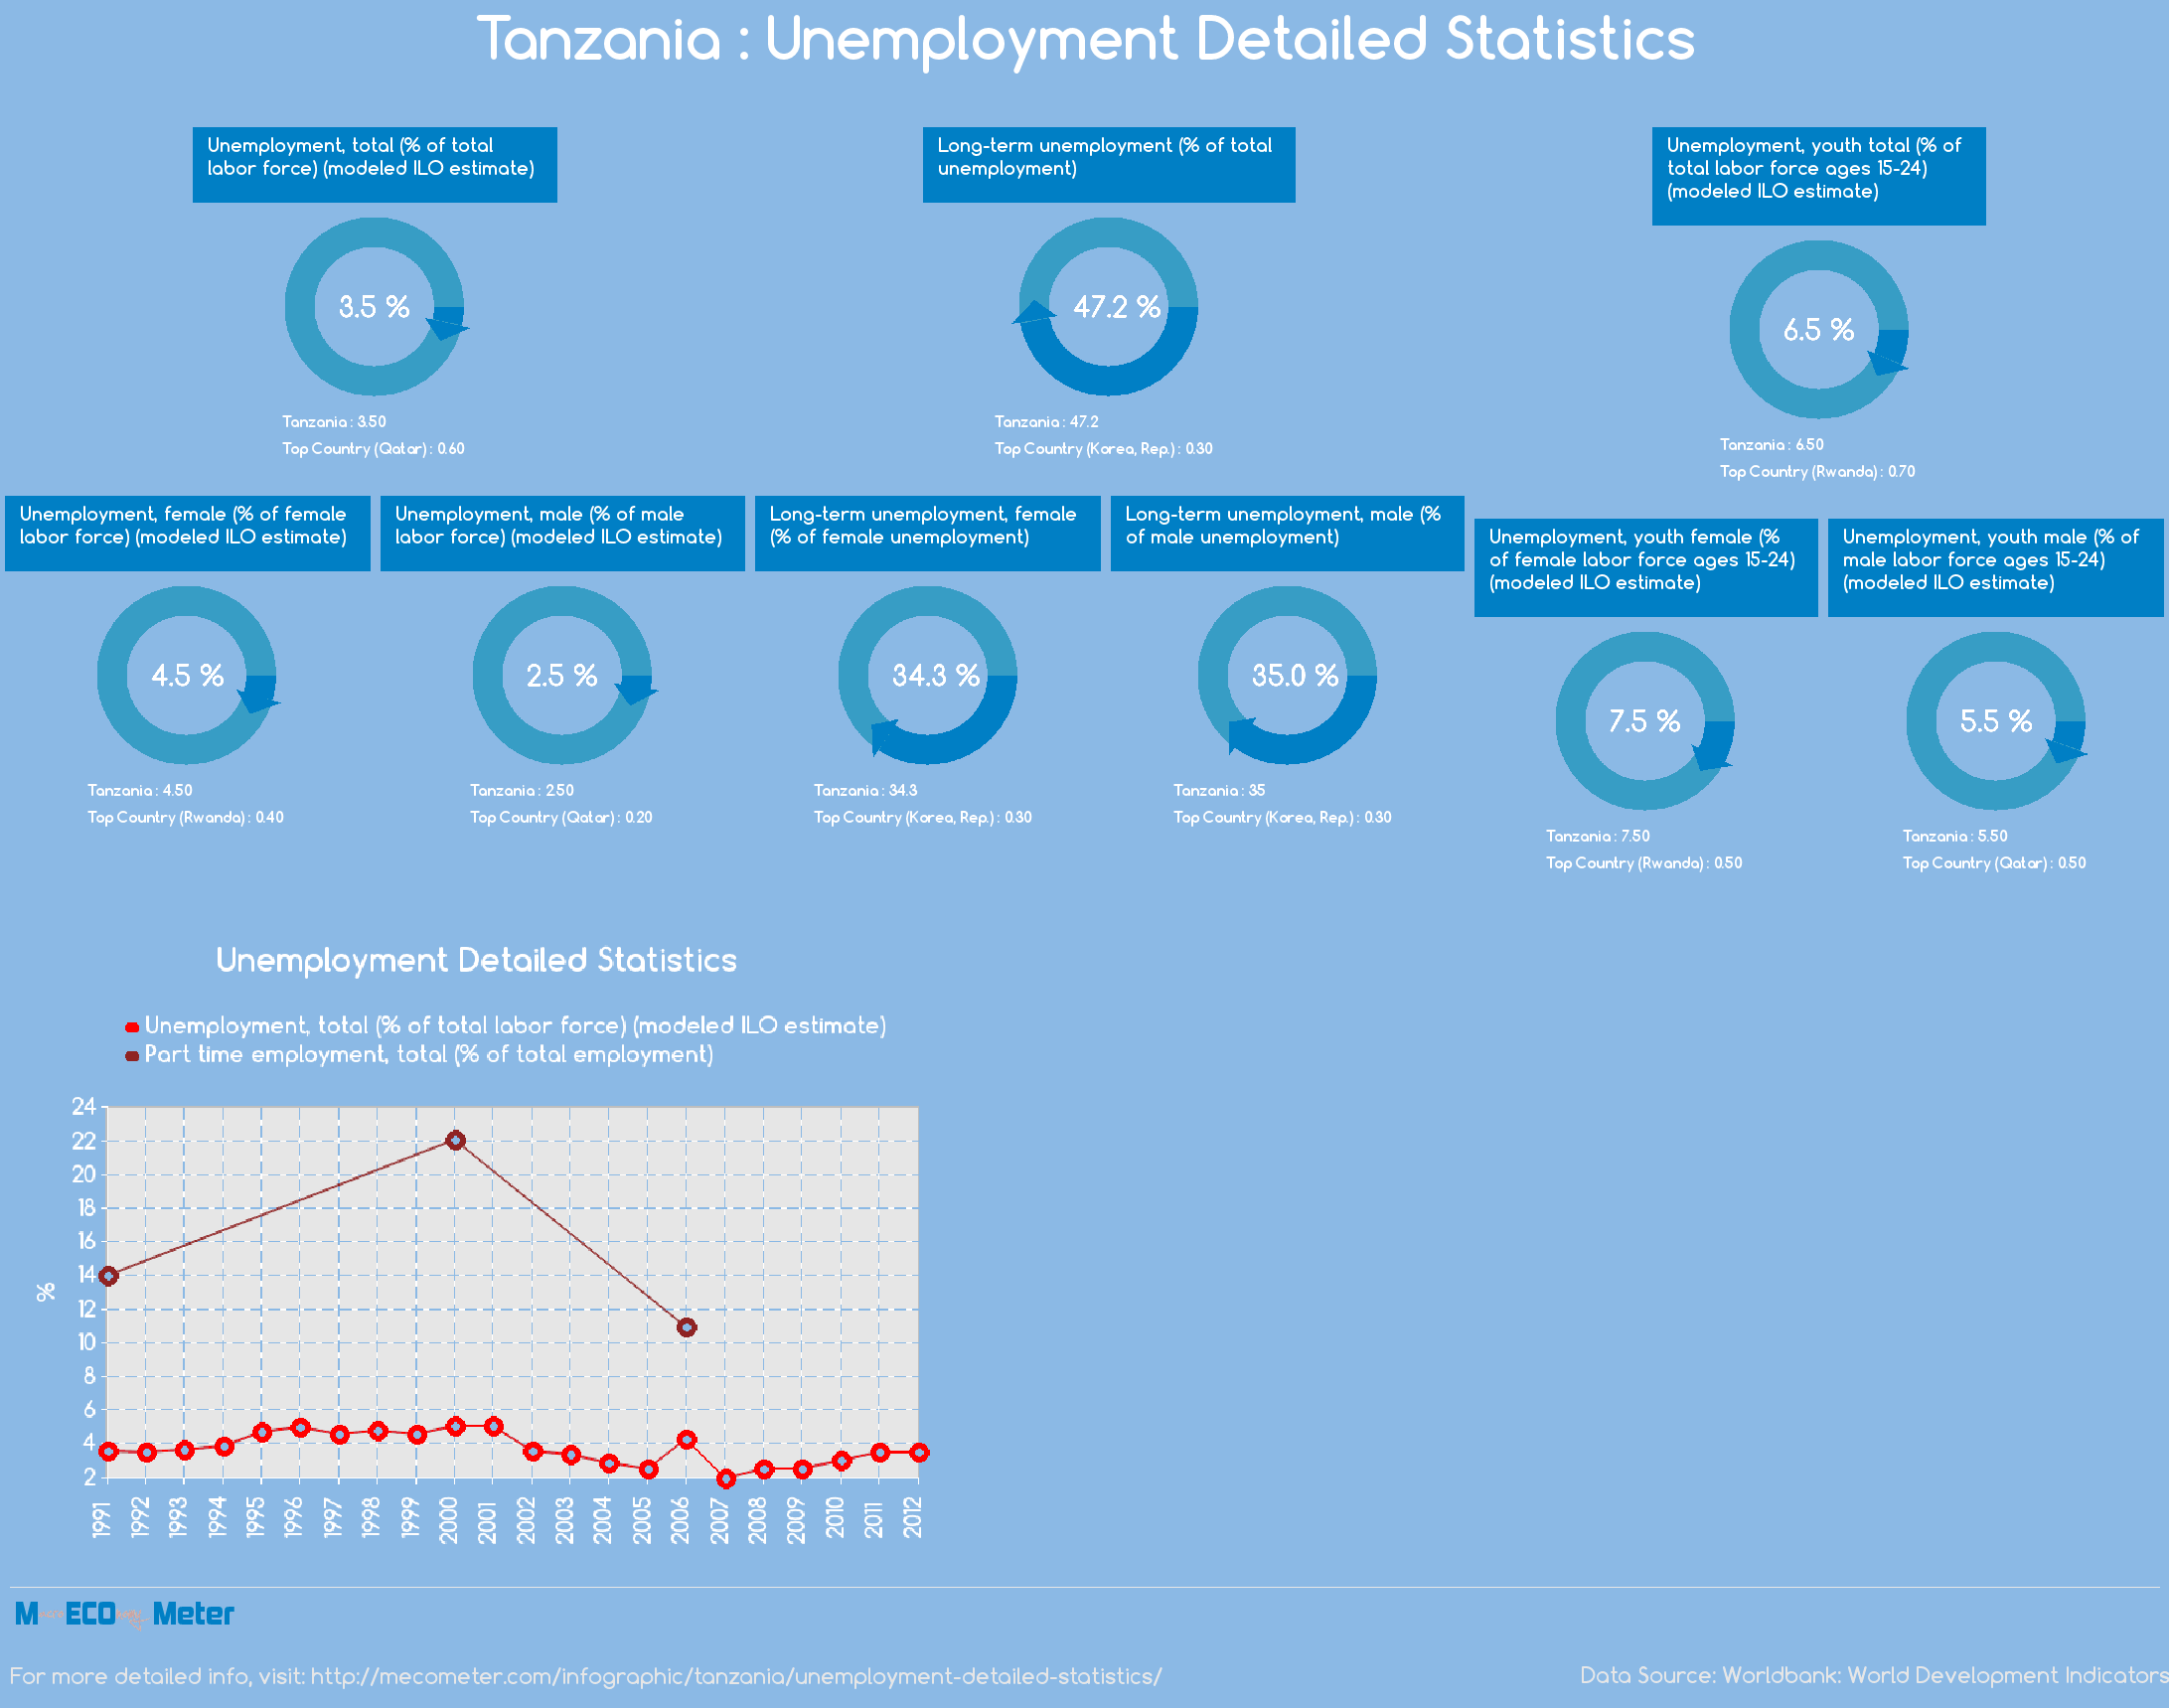 Tanzania : Unemployment Detailed Statistics